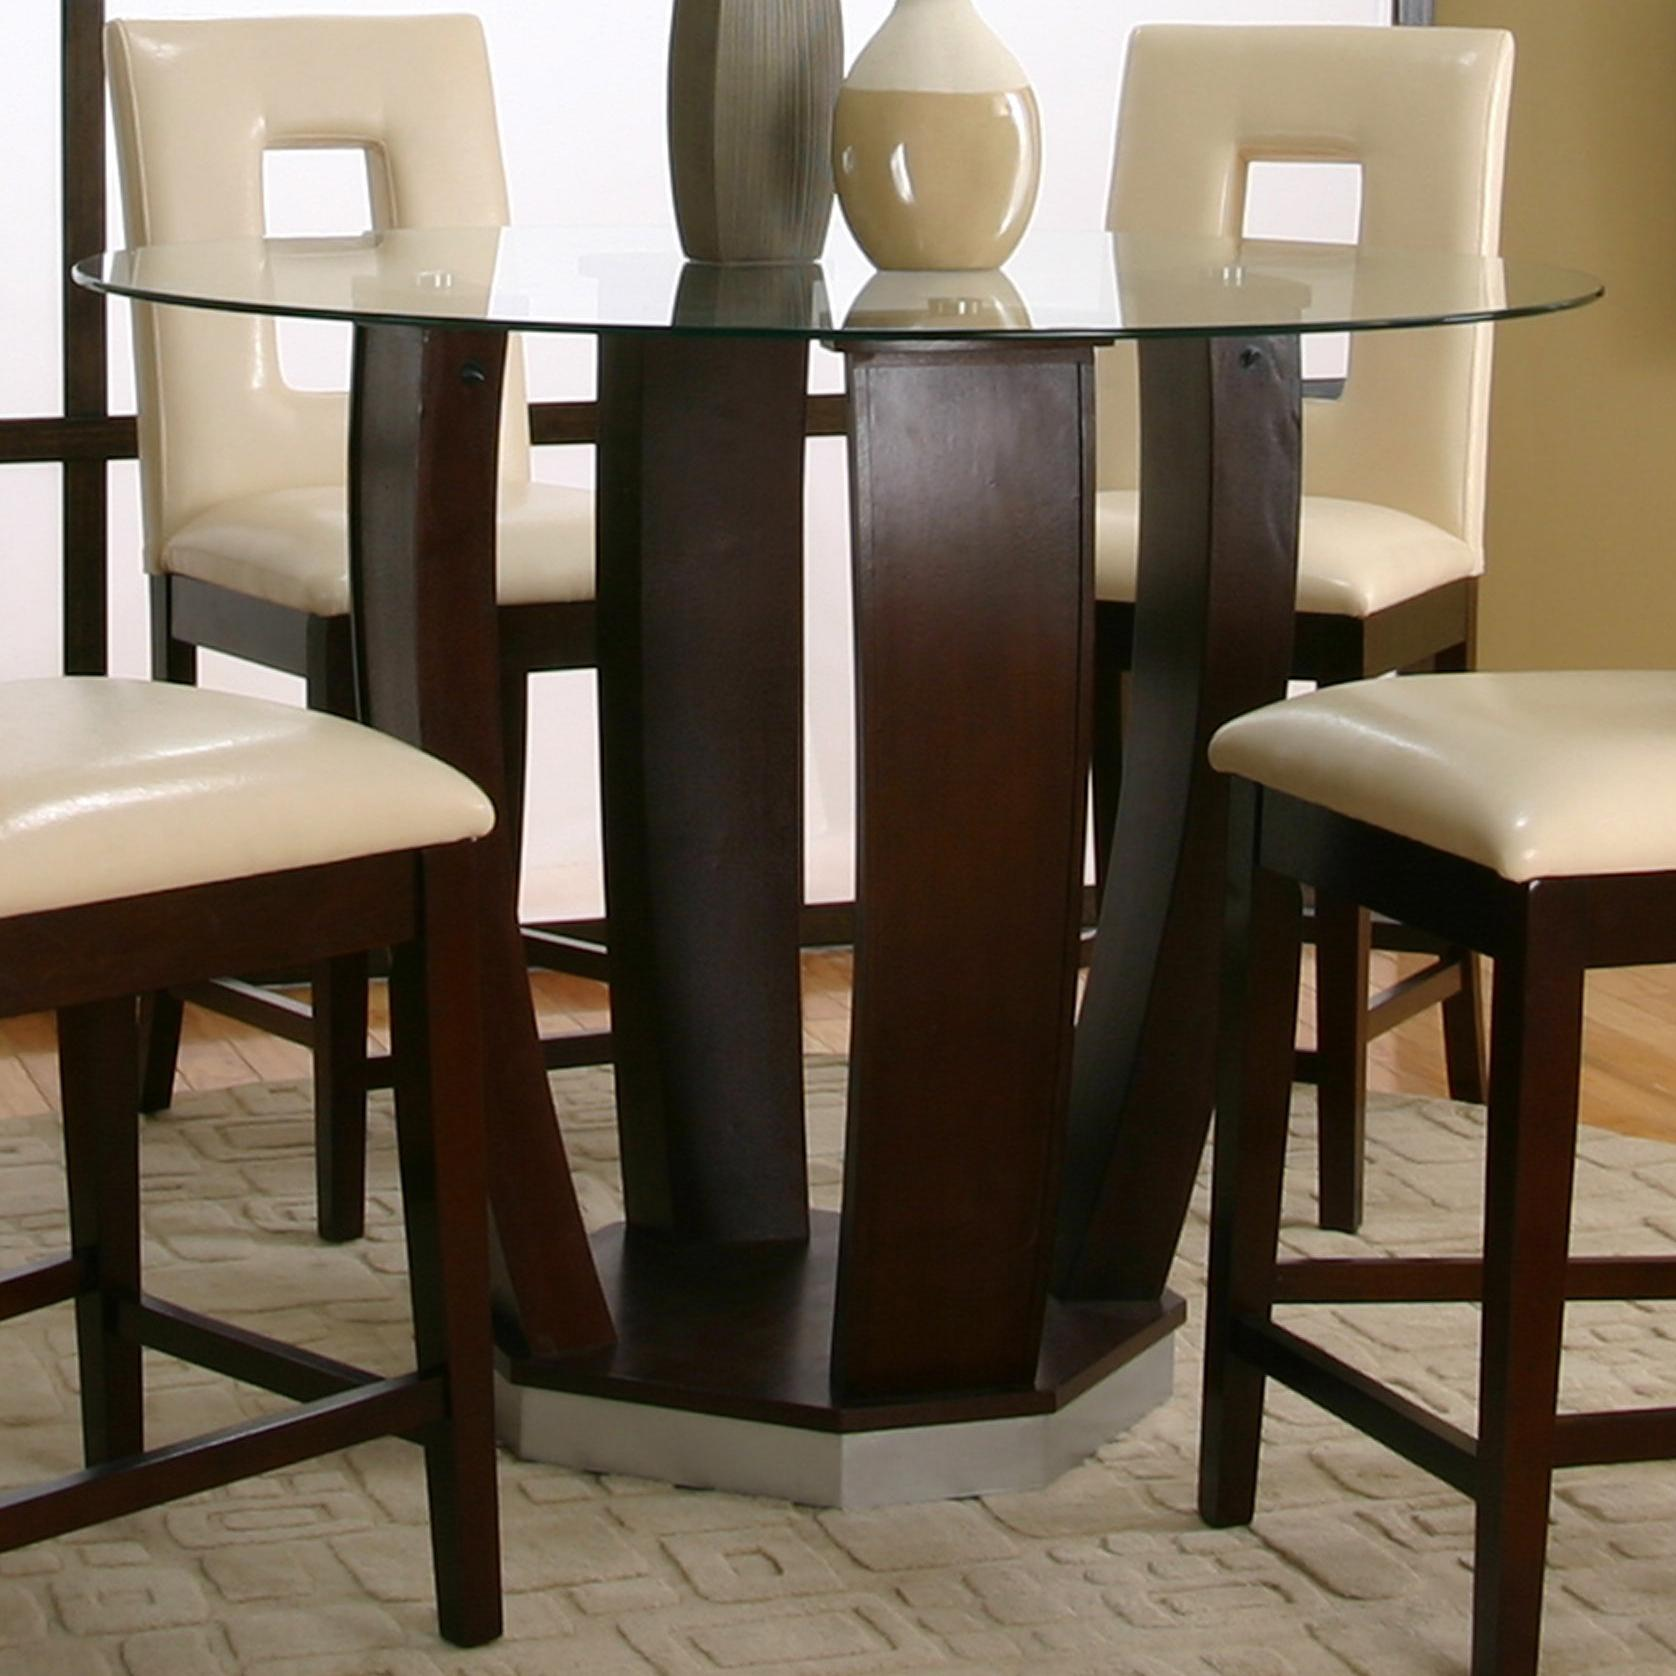 Pub Table With Chairs Cramco Inc Contemporary Design Emerson Round Tempered